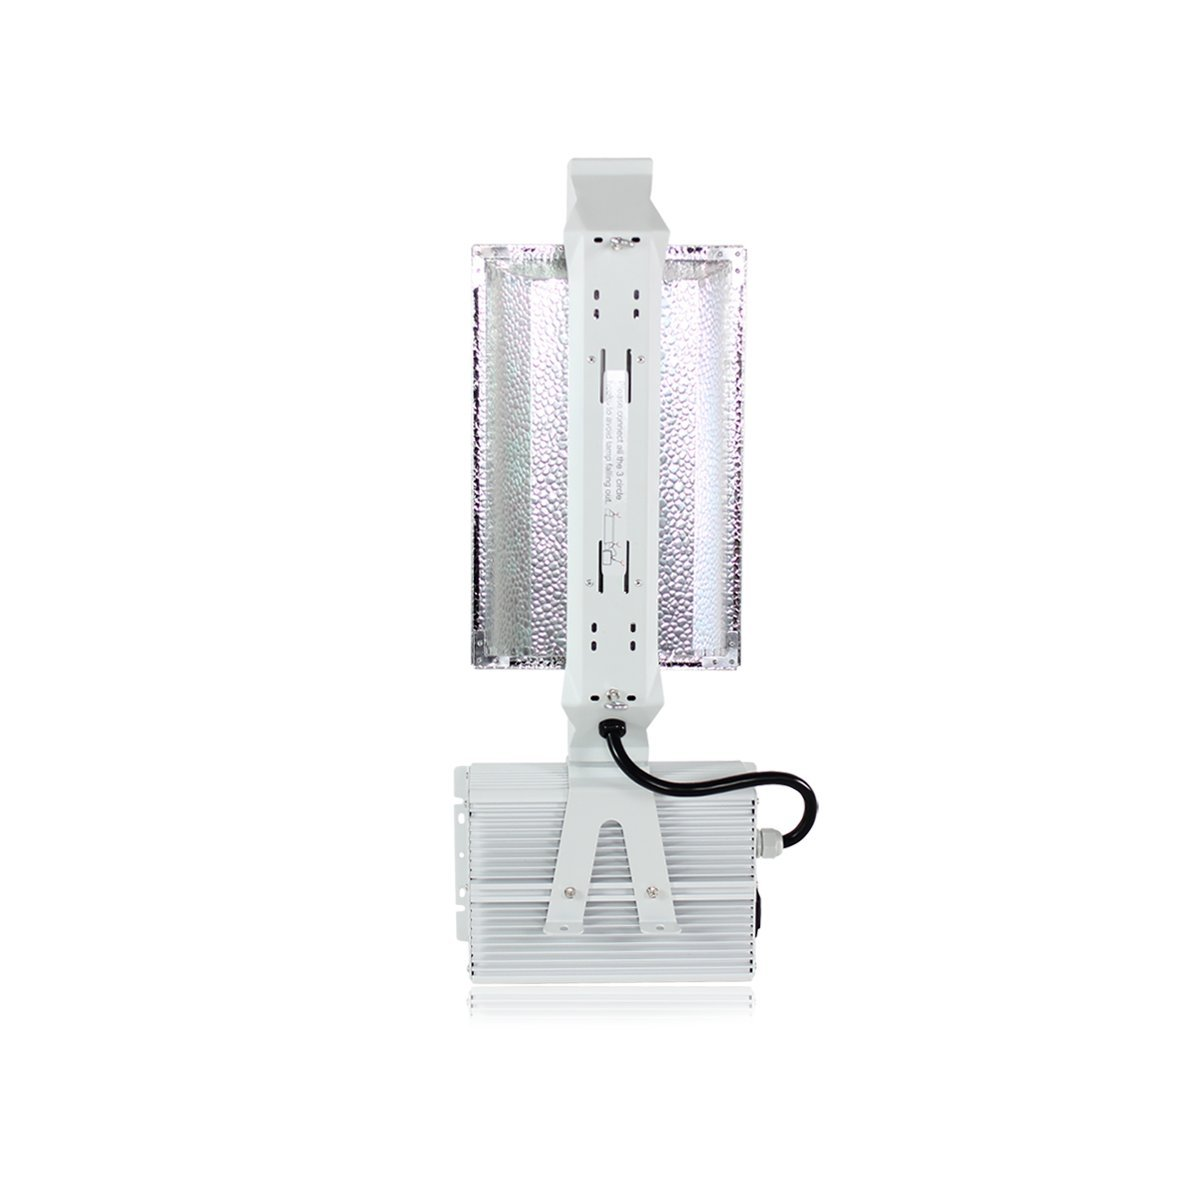 iPower 630W Double Lamp Ceramic Metal Halide Grow Light System Kits 240V, CMH Bulb is NOT included by iPower (Image #3)